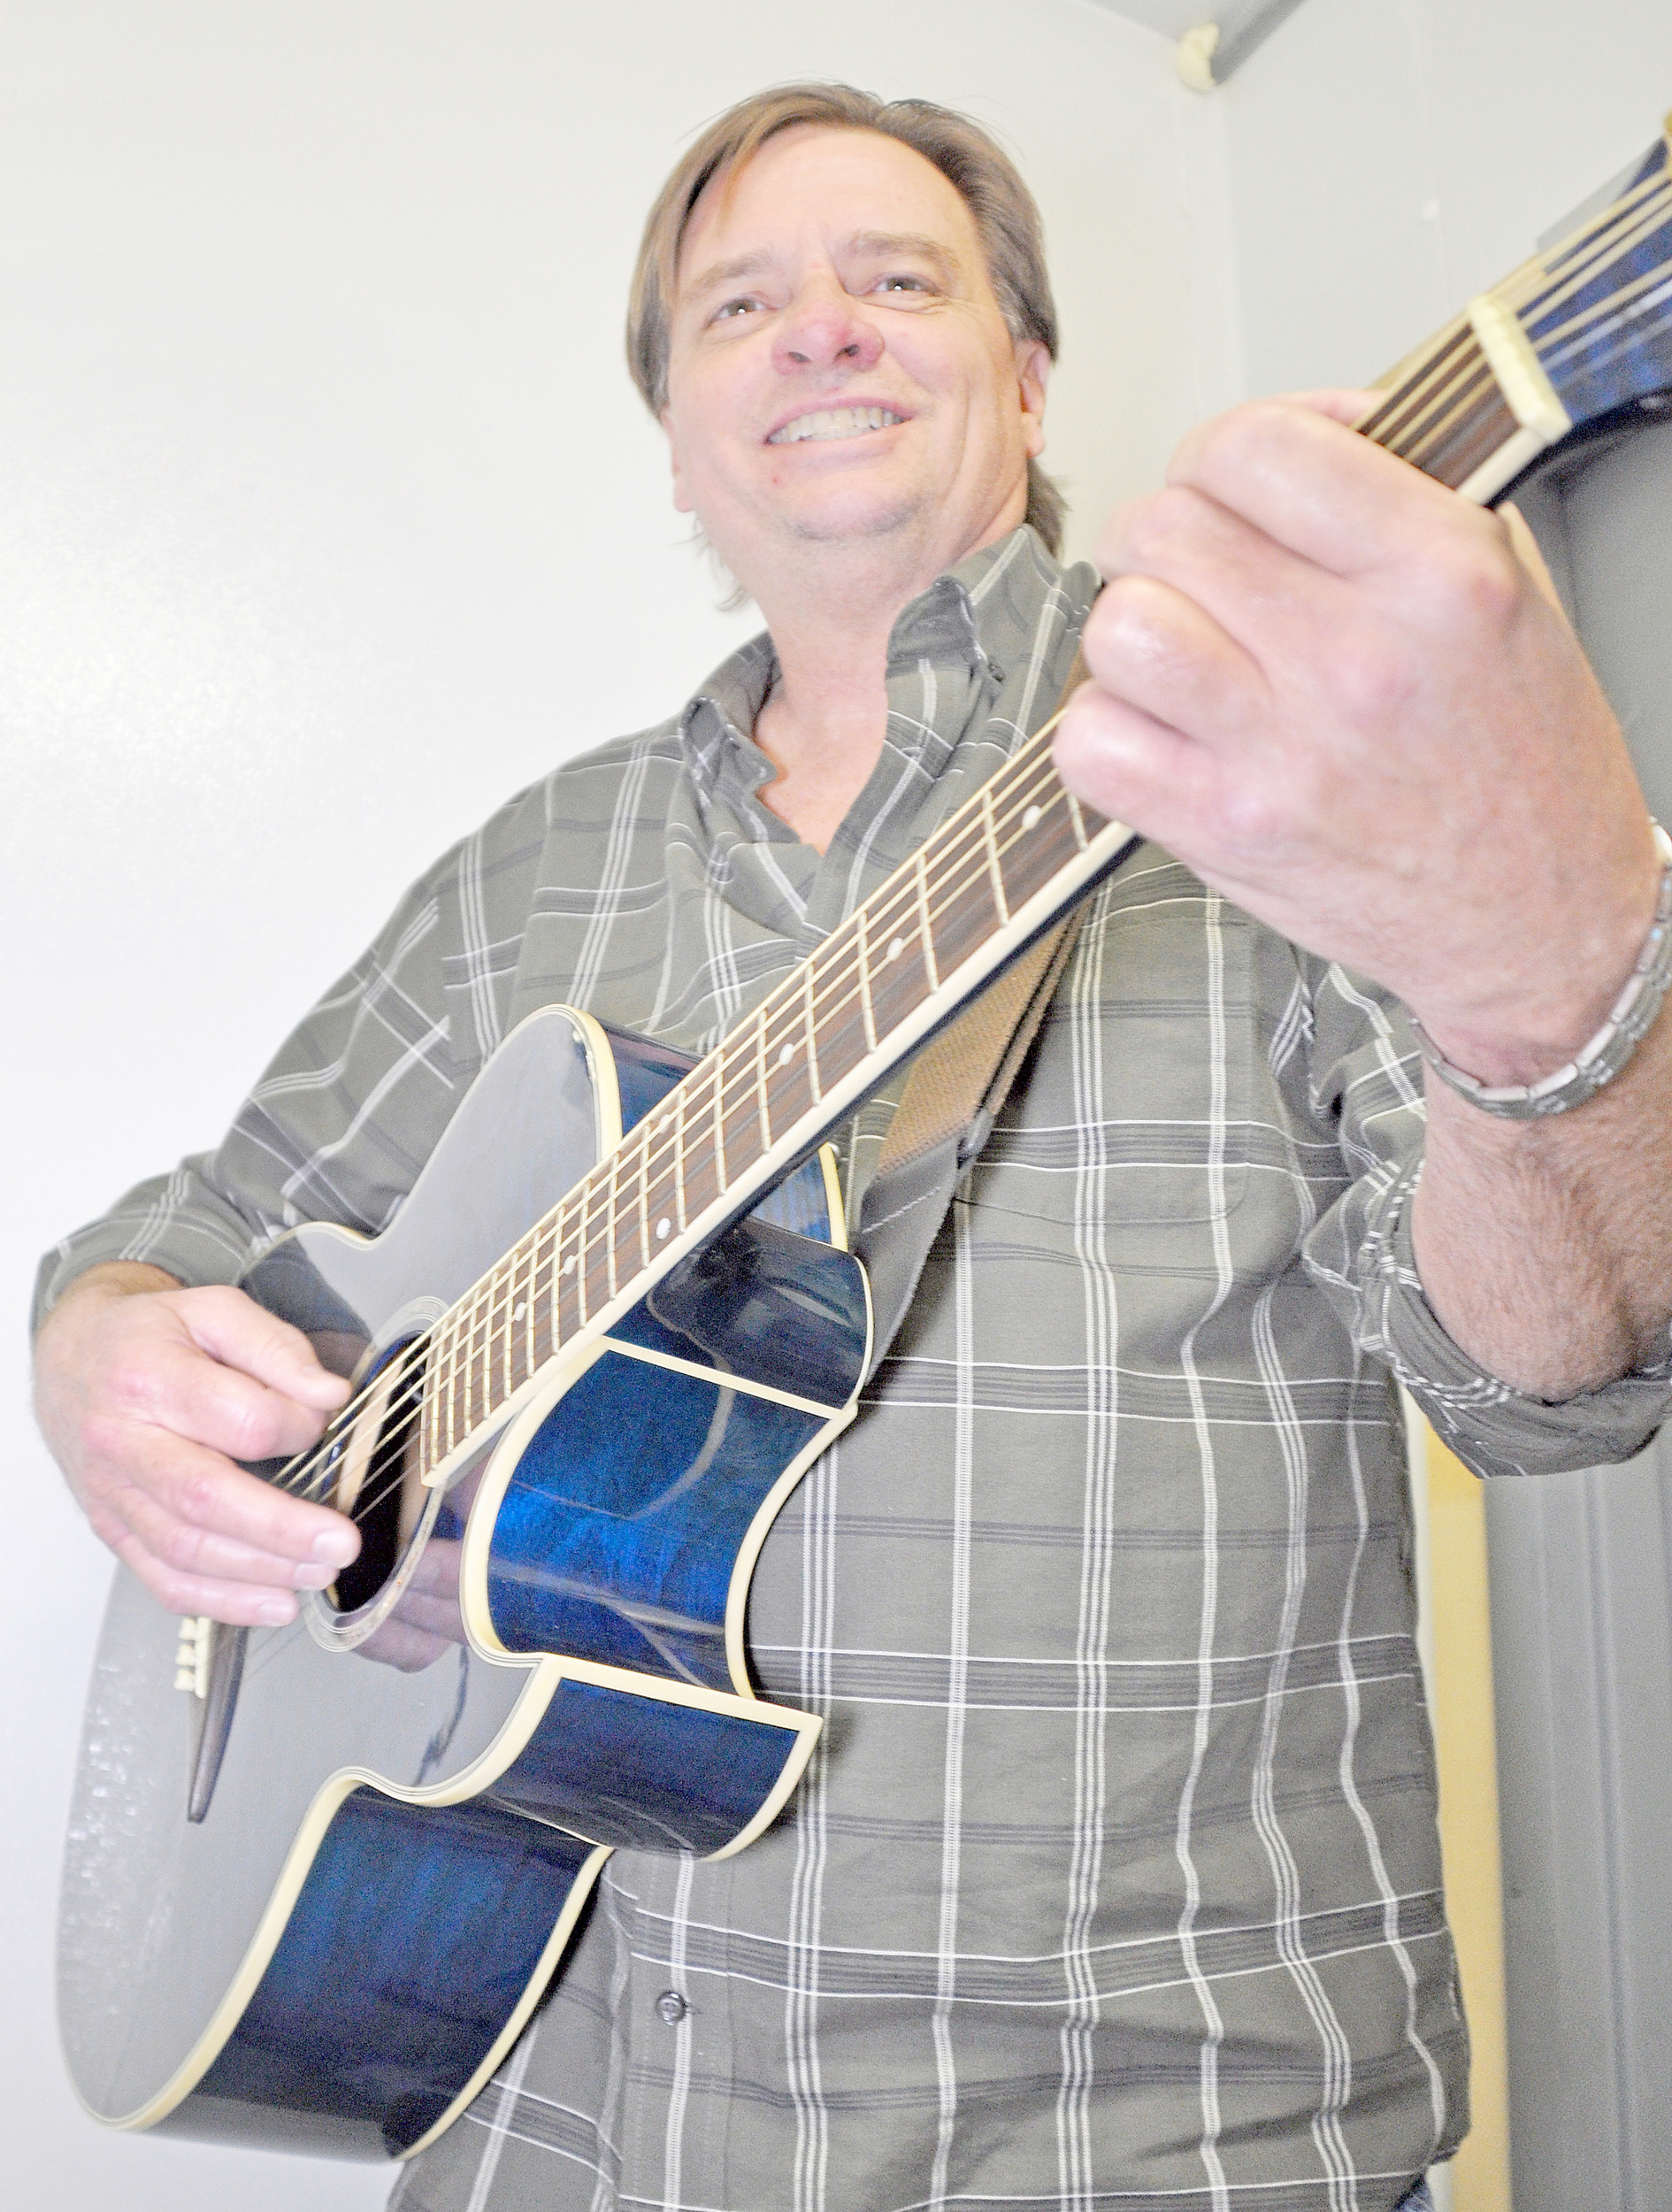 Musician Jeff Parnell tunes up for a show. Daily Mountain Eagle - Dale Short